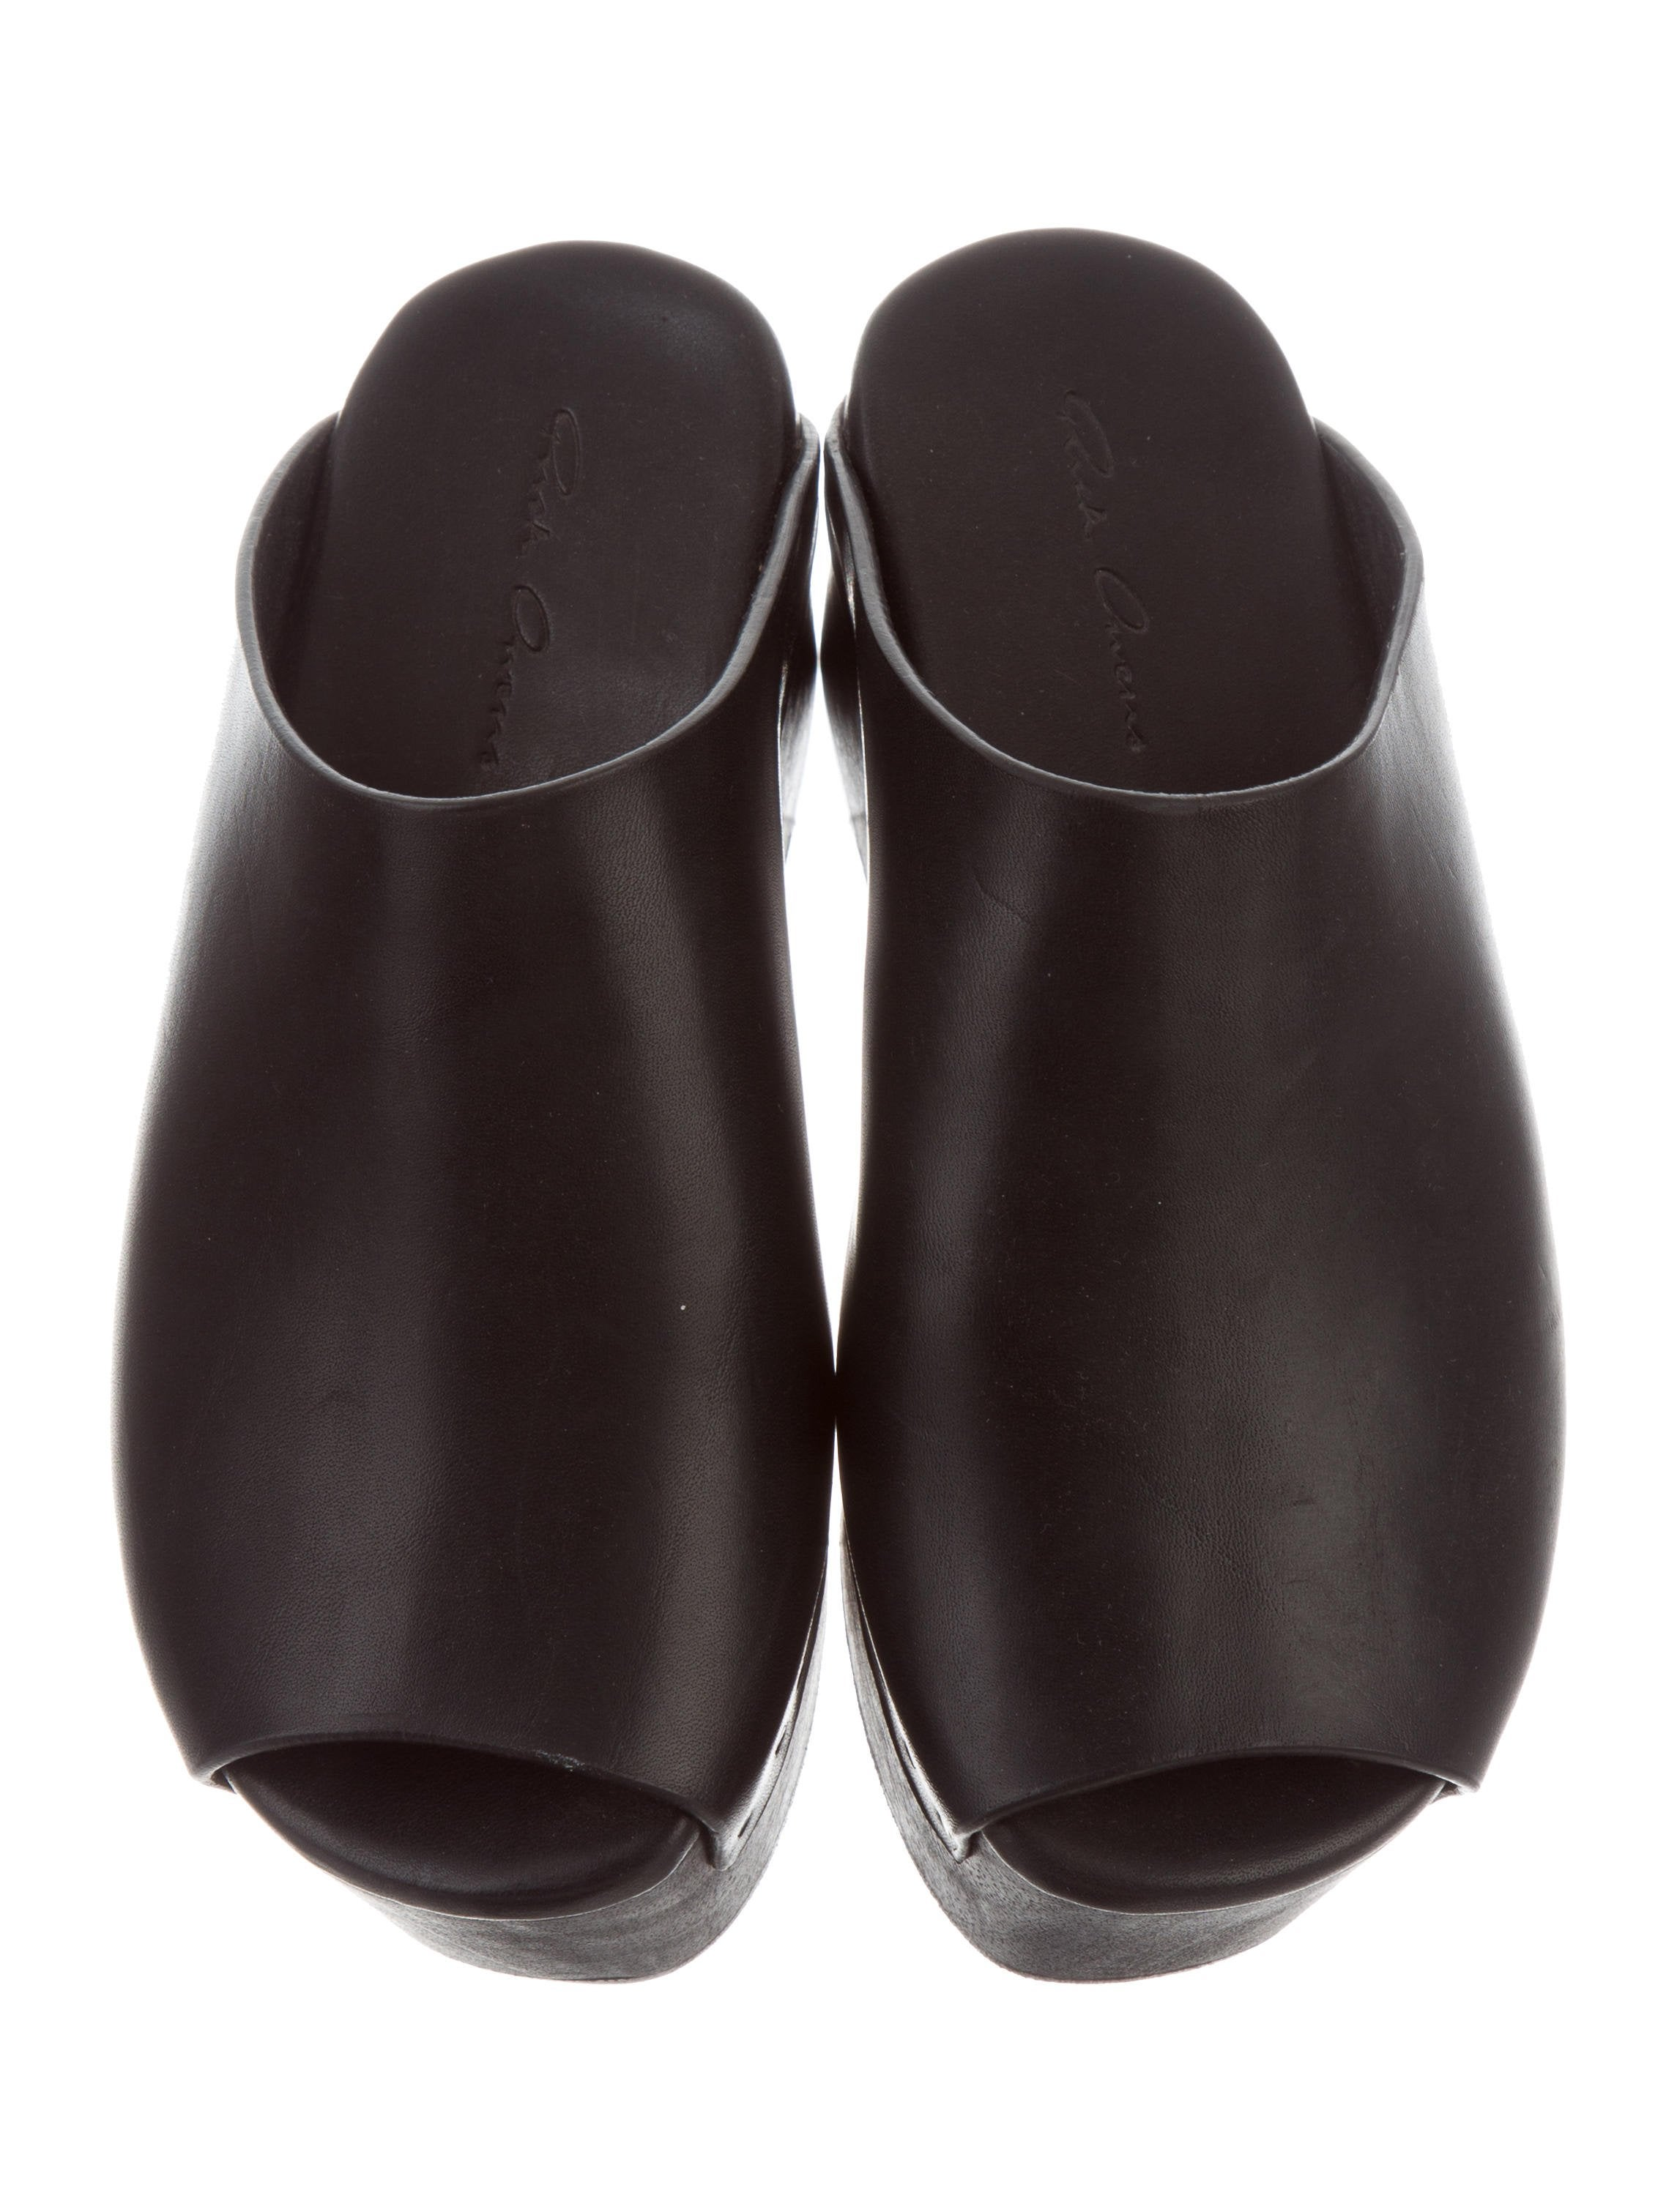 cheap sale excellent Rick Owens Peep-Toe Sabot Clogs w/ Tags discount codes really cheap buy cheap prices best place cheap price cheap best seller 6LTB8XT0b